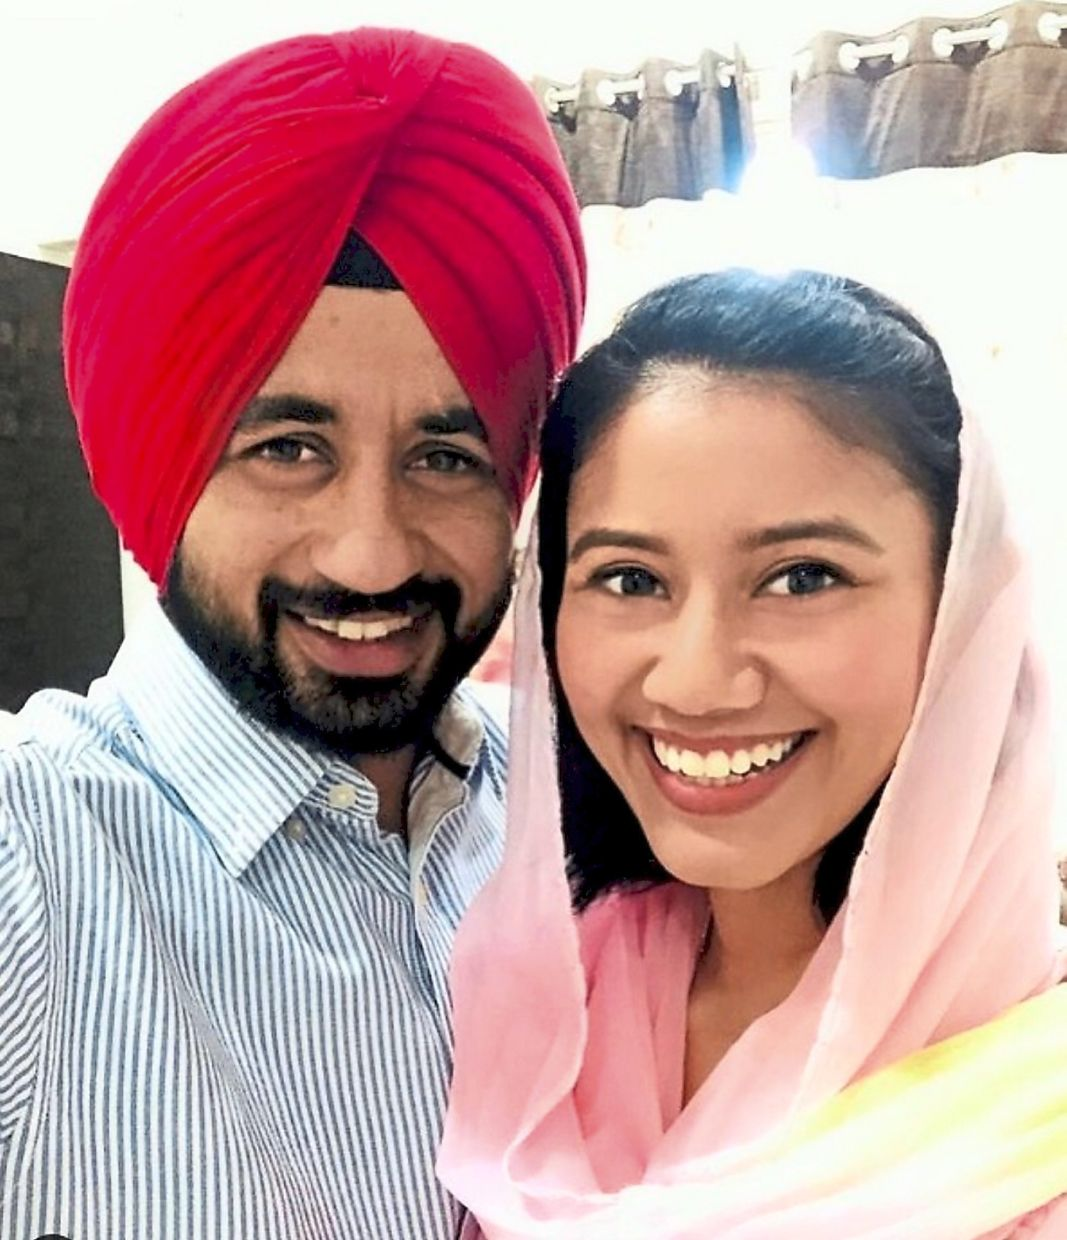 Happy couple: An Instagram photo from Illi's account showing her with Manpreet.